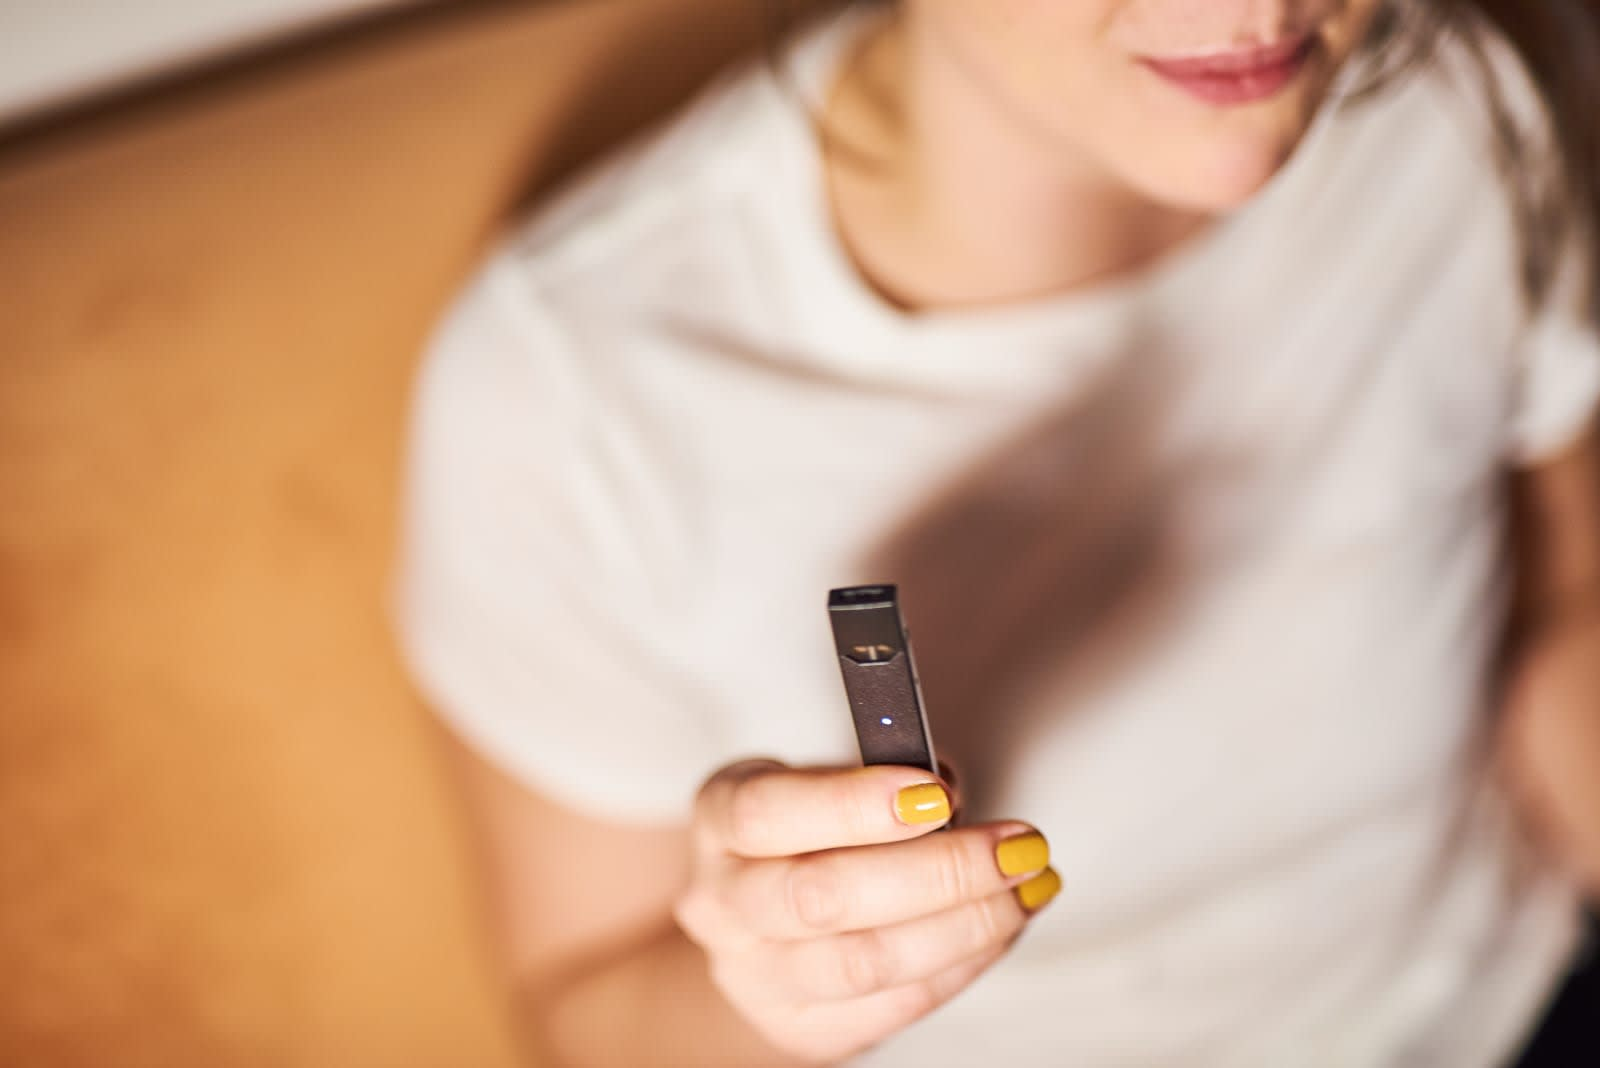 Juul's pilot program could trace retailers that sell to teen